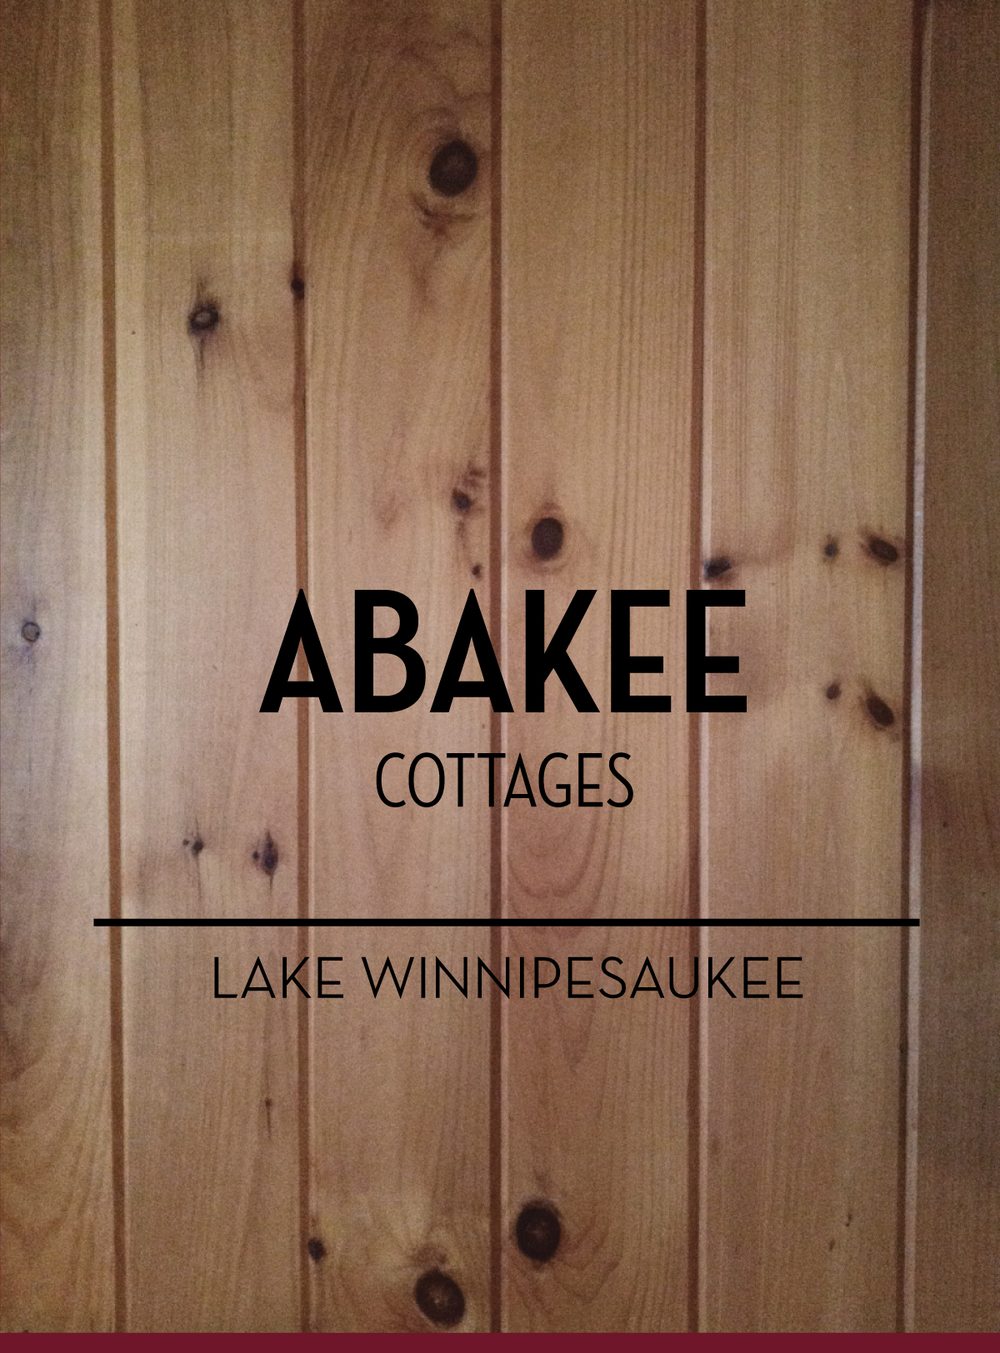 July 8: Thinking about a logo for Abakee Cottages.